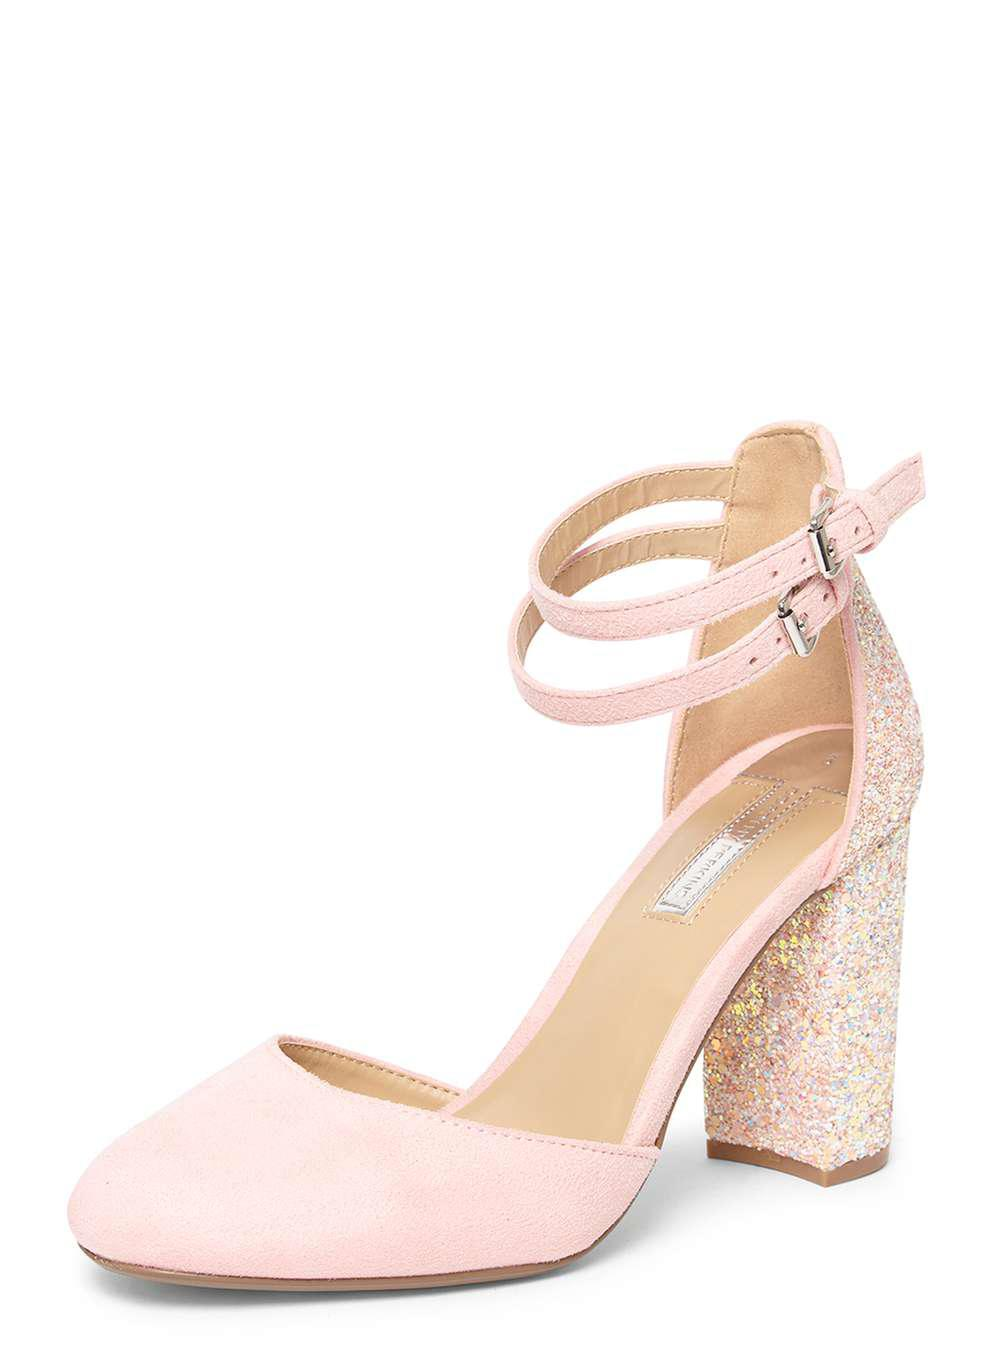 82e902d1f7f6 Dorothy Perkins Pink 'gally' Glitter Court Shoes in Pink - Lyst